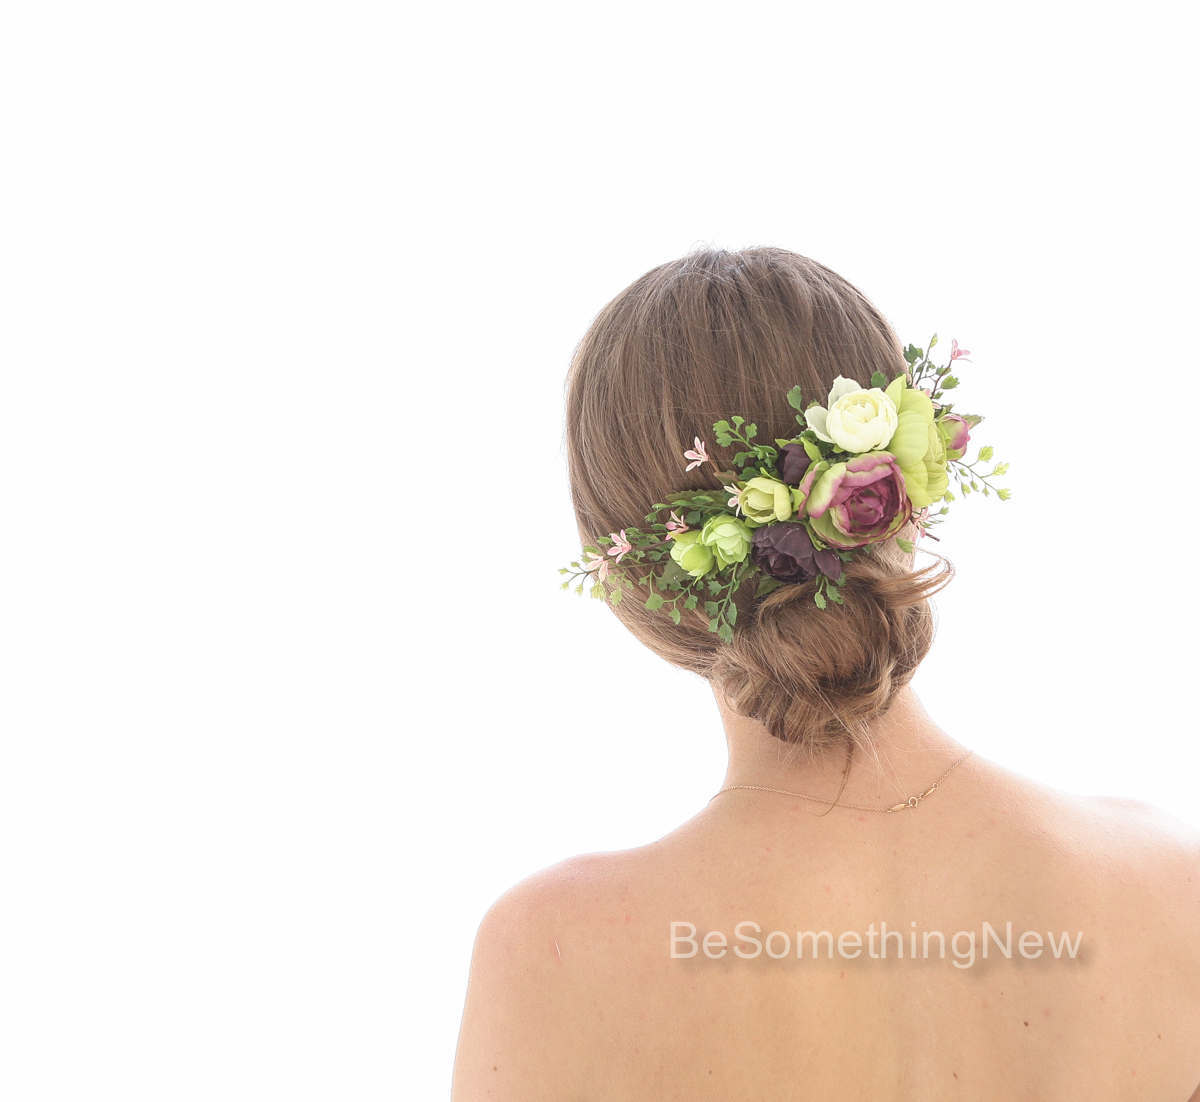 Large Flower Hair Comb in Greenery Pink and Burgundy, Wedding Hair Comb for the Back of your Hair, Fern and Flower Wedding Hair Accessory – Be Something New